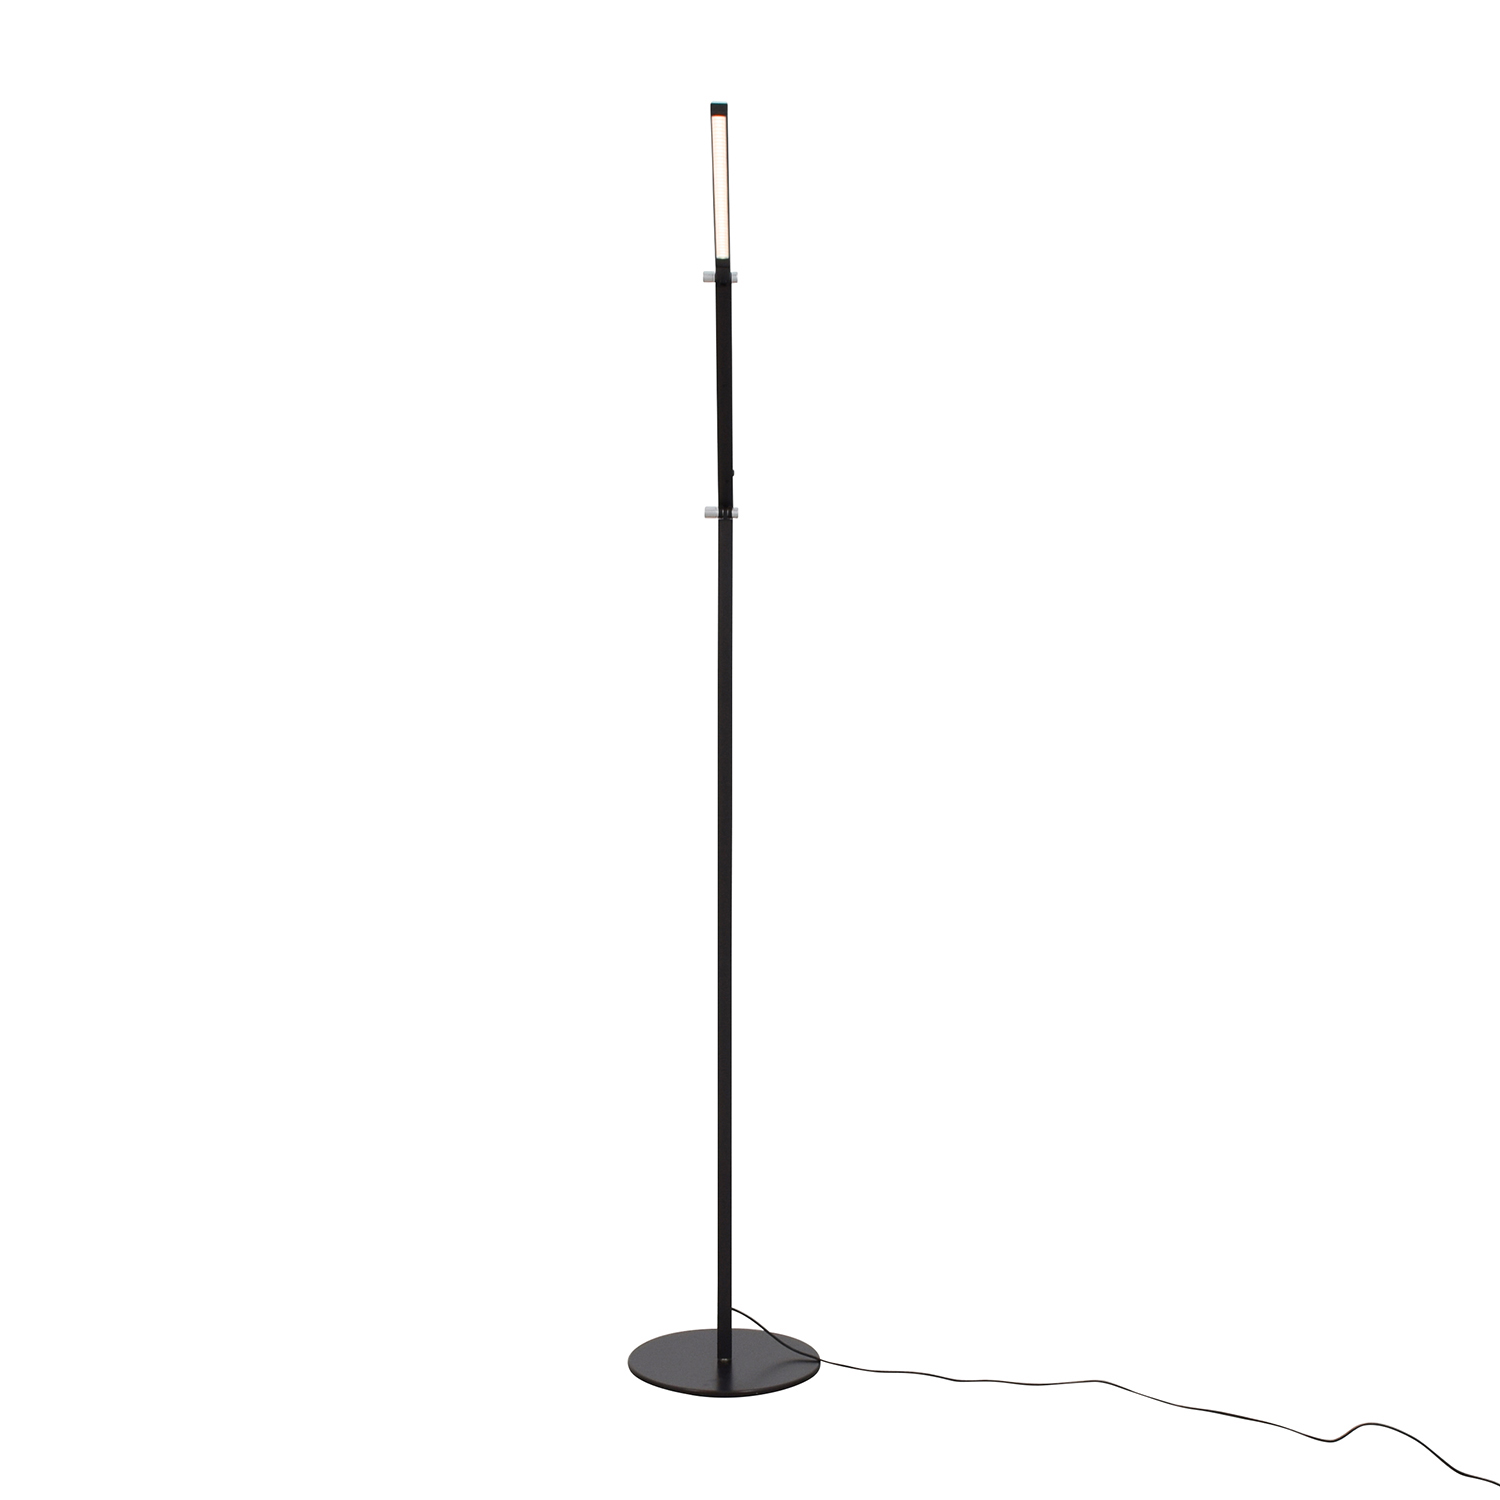 Koncept Koncept Gen 3 Z-Bar Warm Light LED Modern Floor Lamp Black dimensions